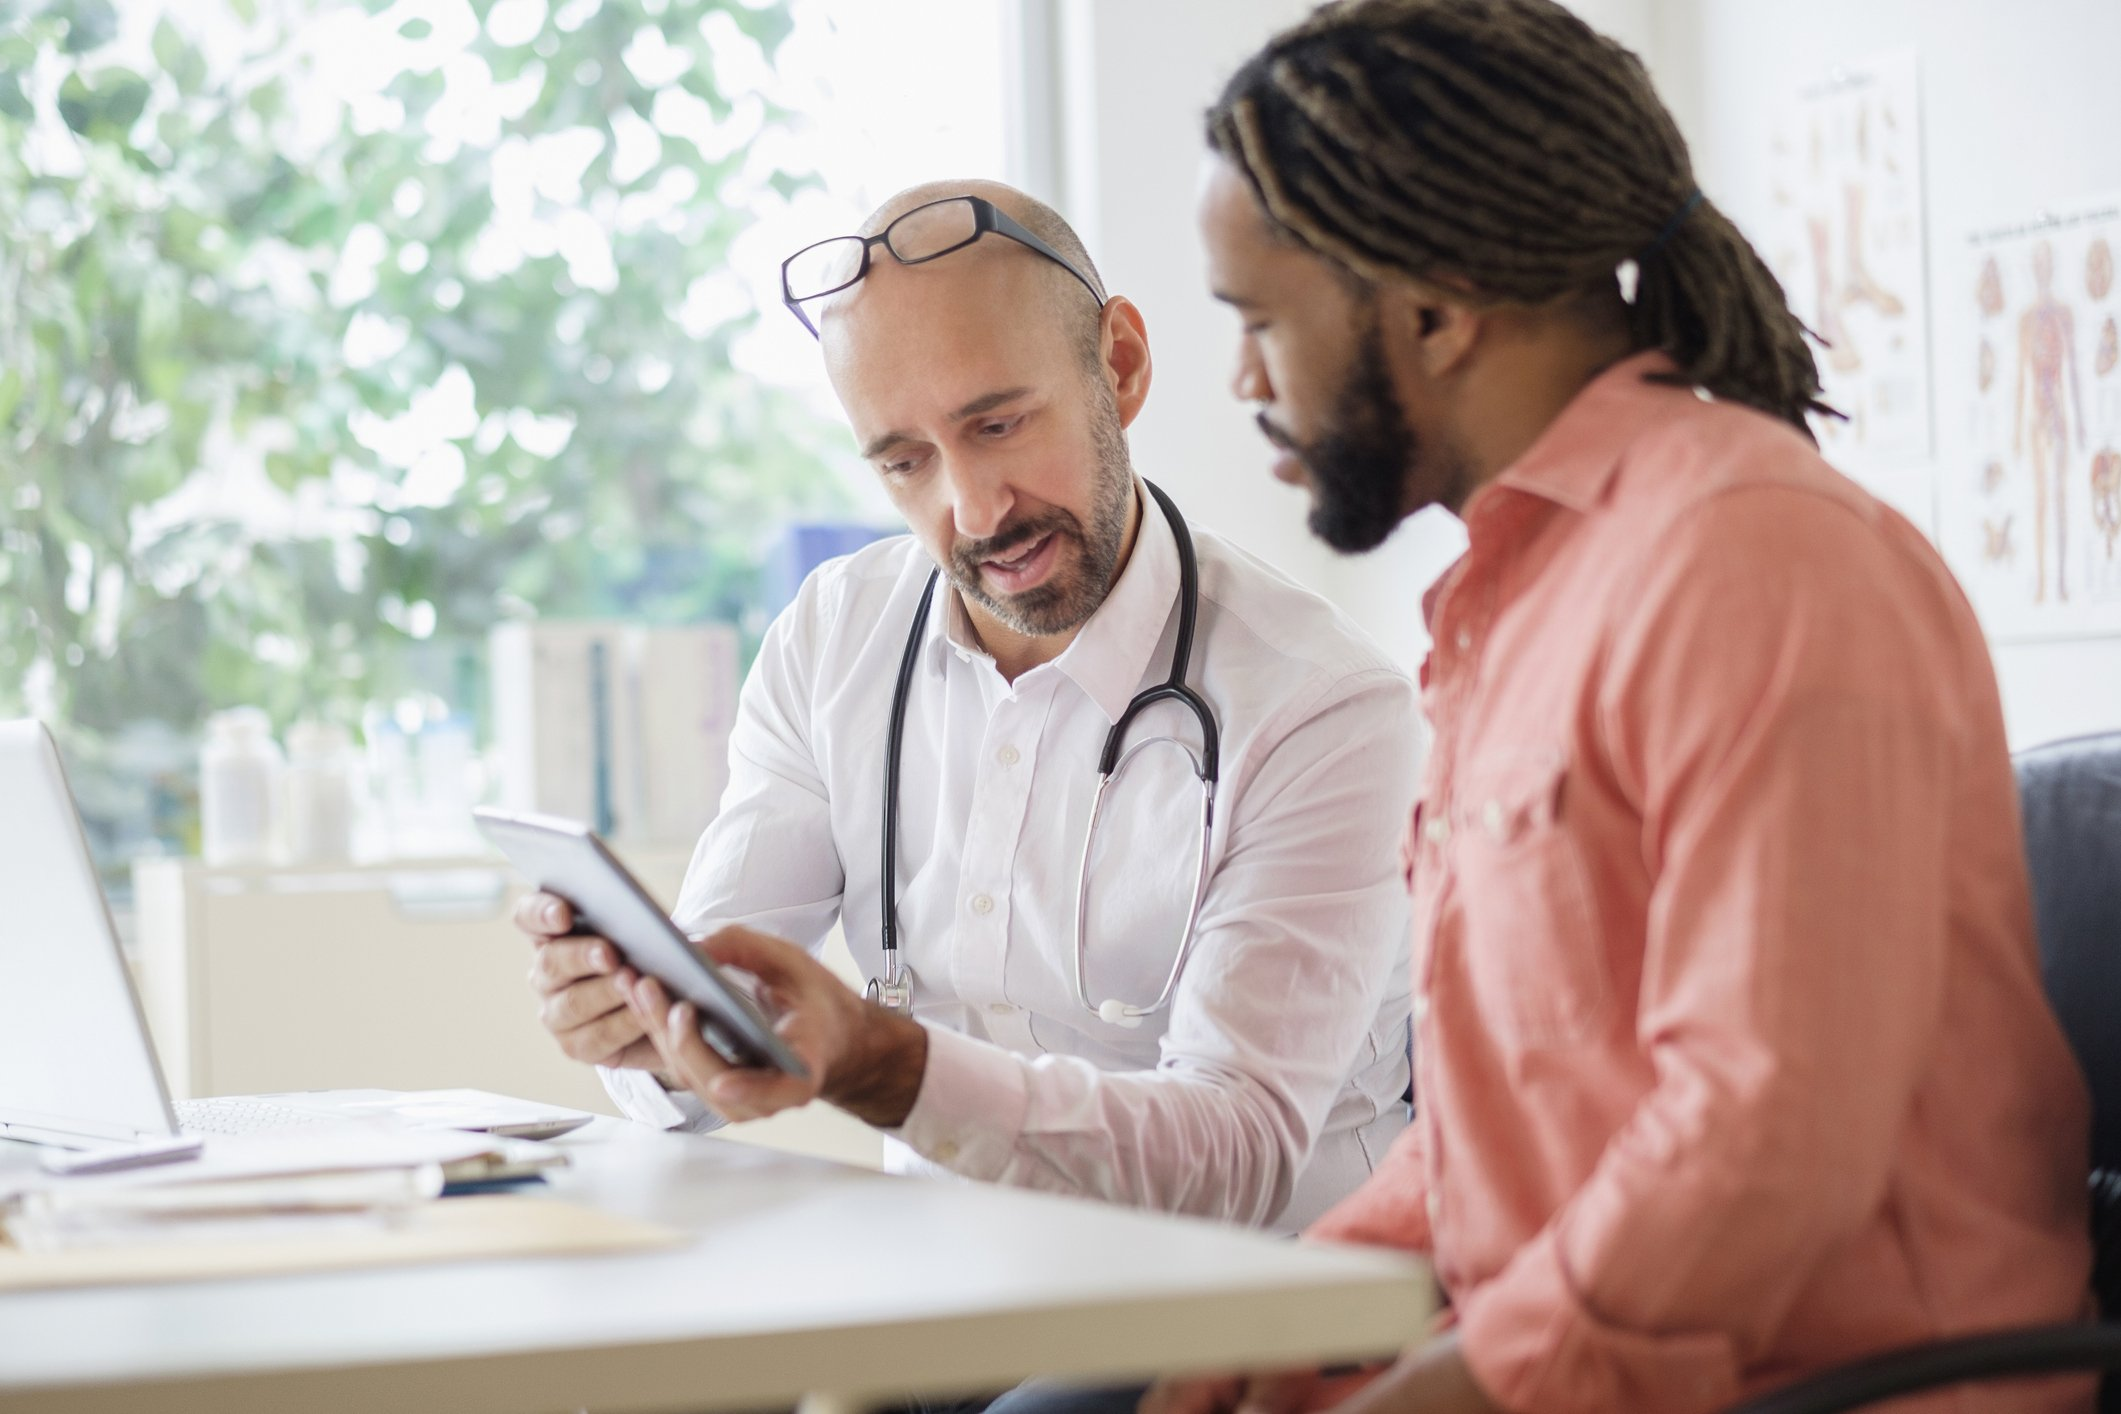 Doctor giving consultation to patient using digital tablet | Photo: Getty Images